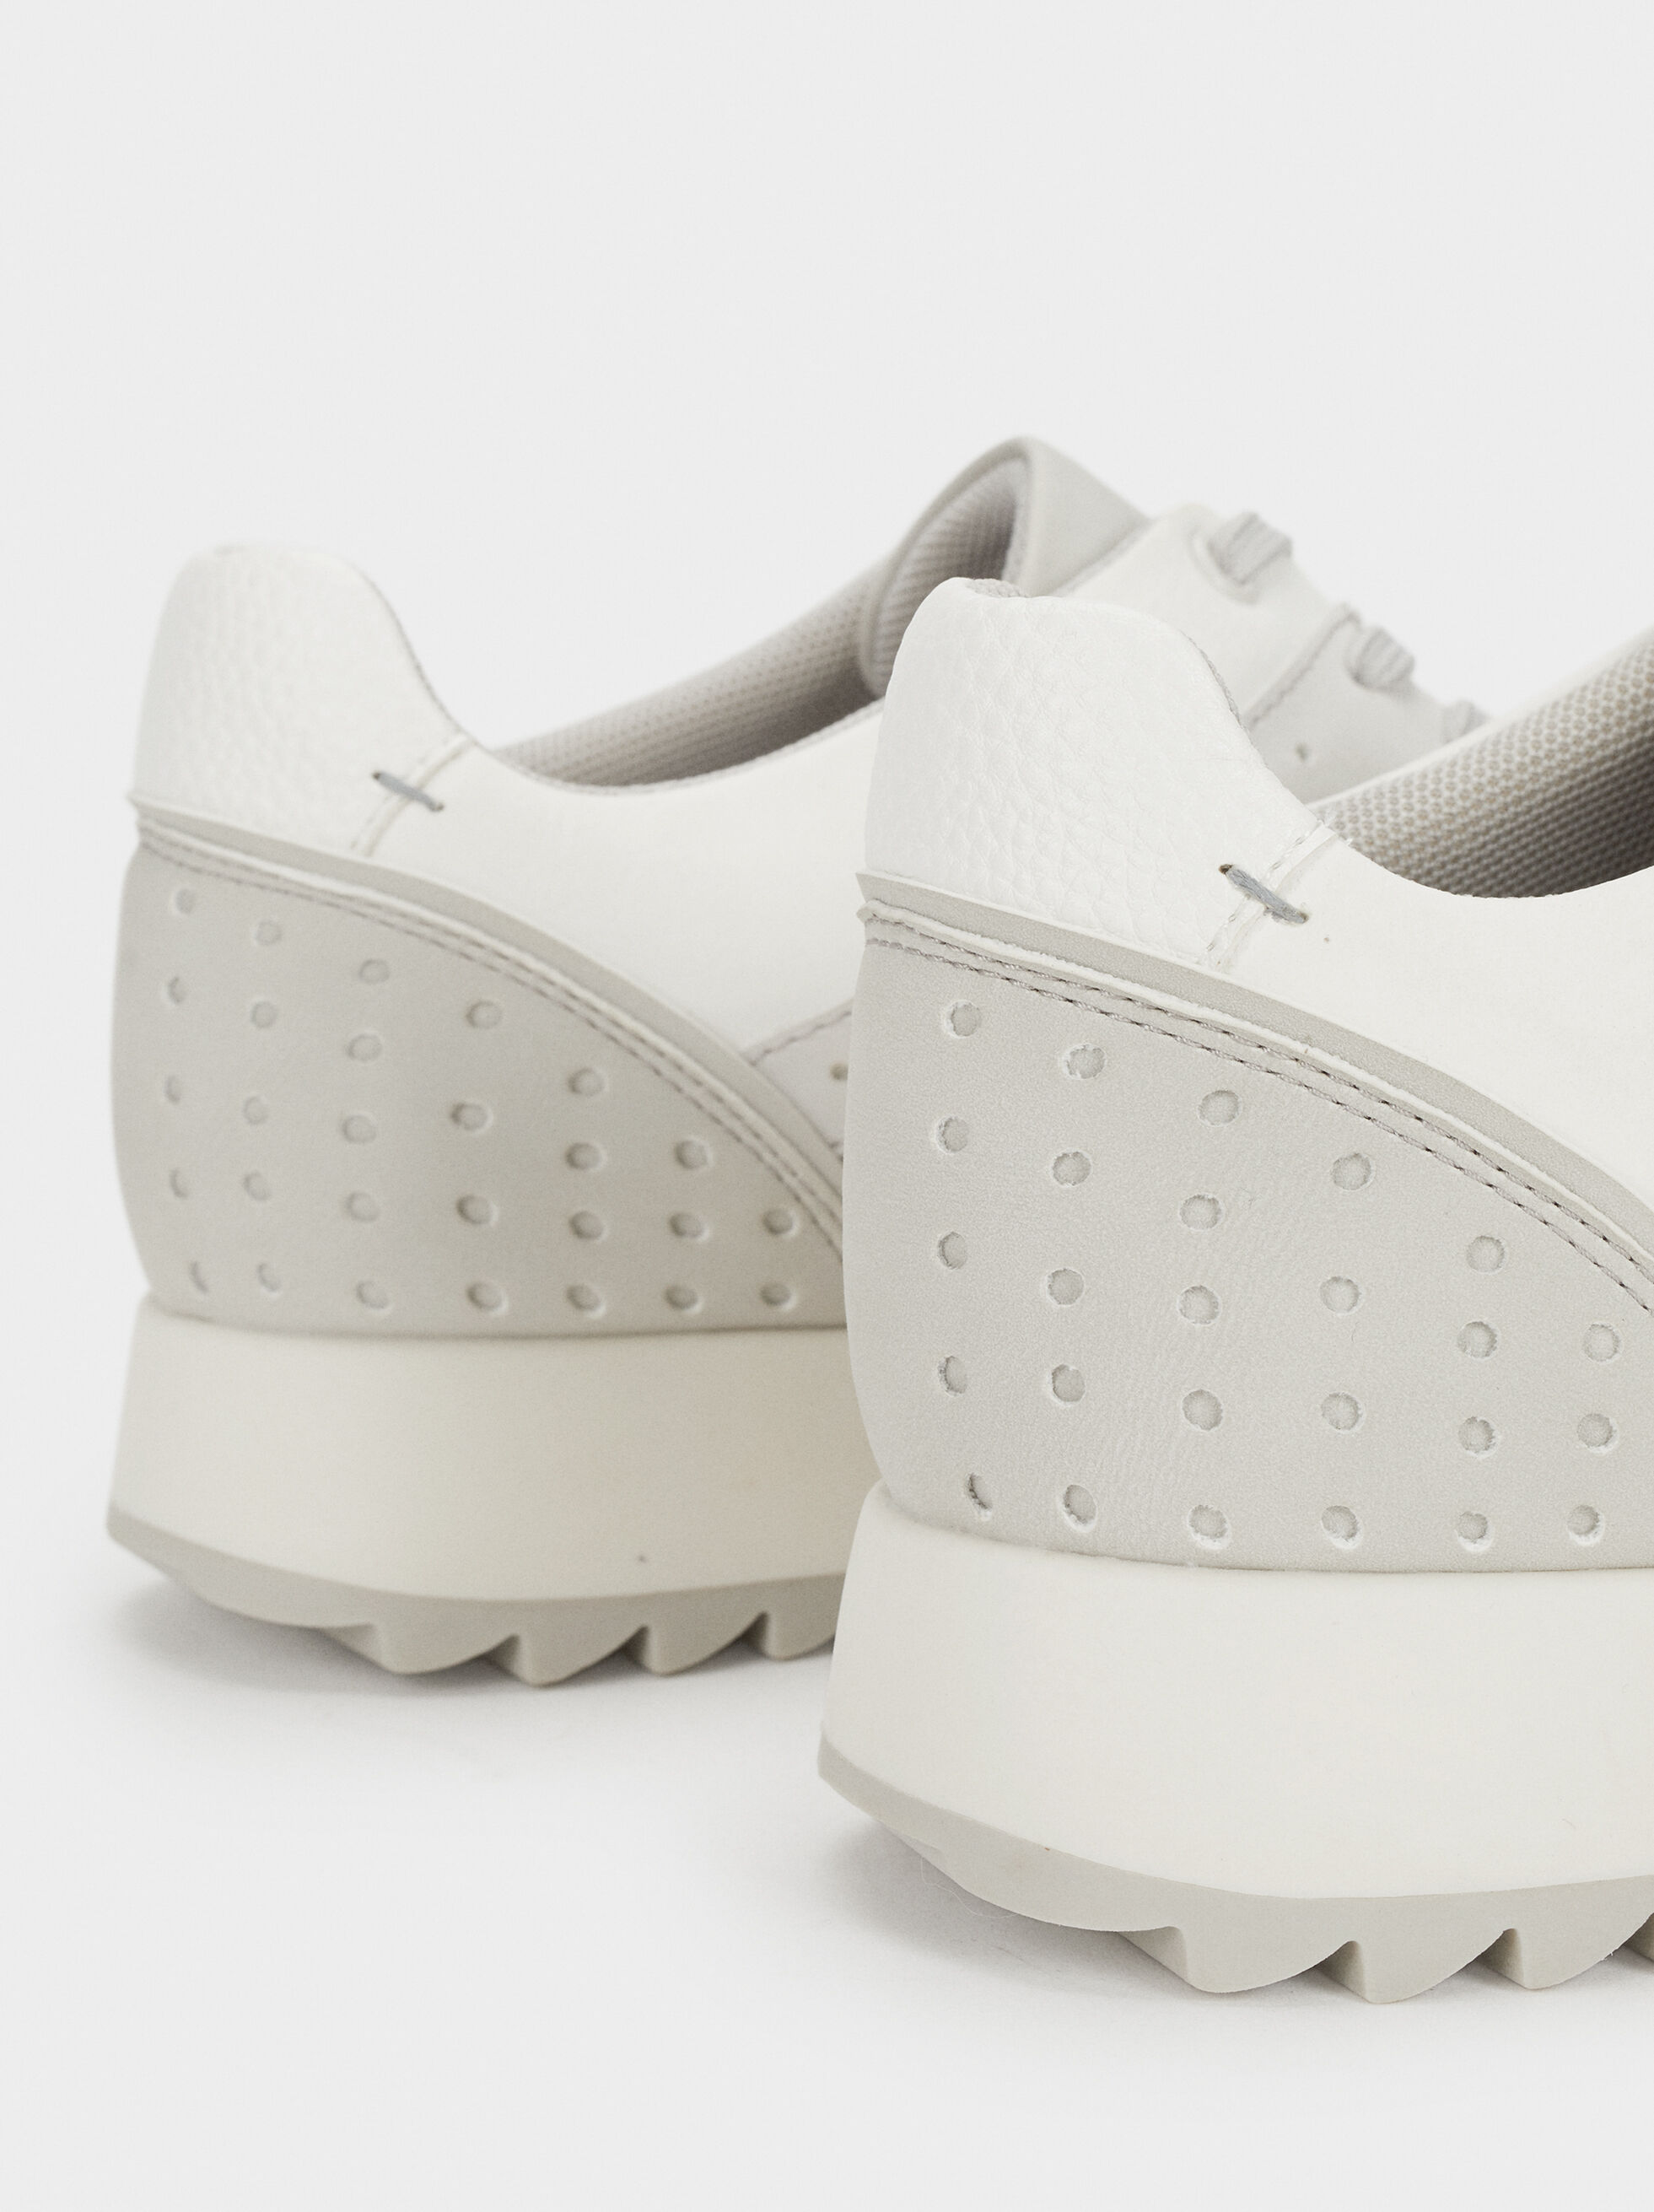 Sneakers With Perforation Detailing, White, hi-res